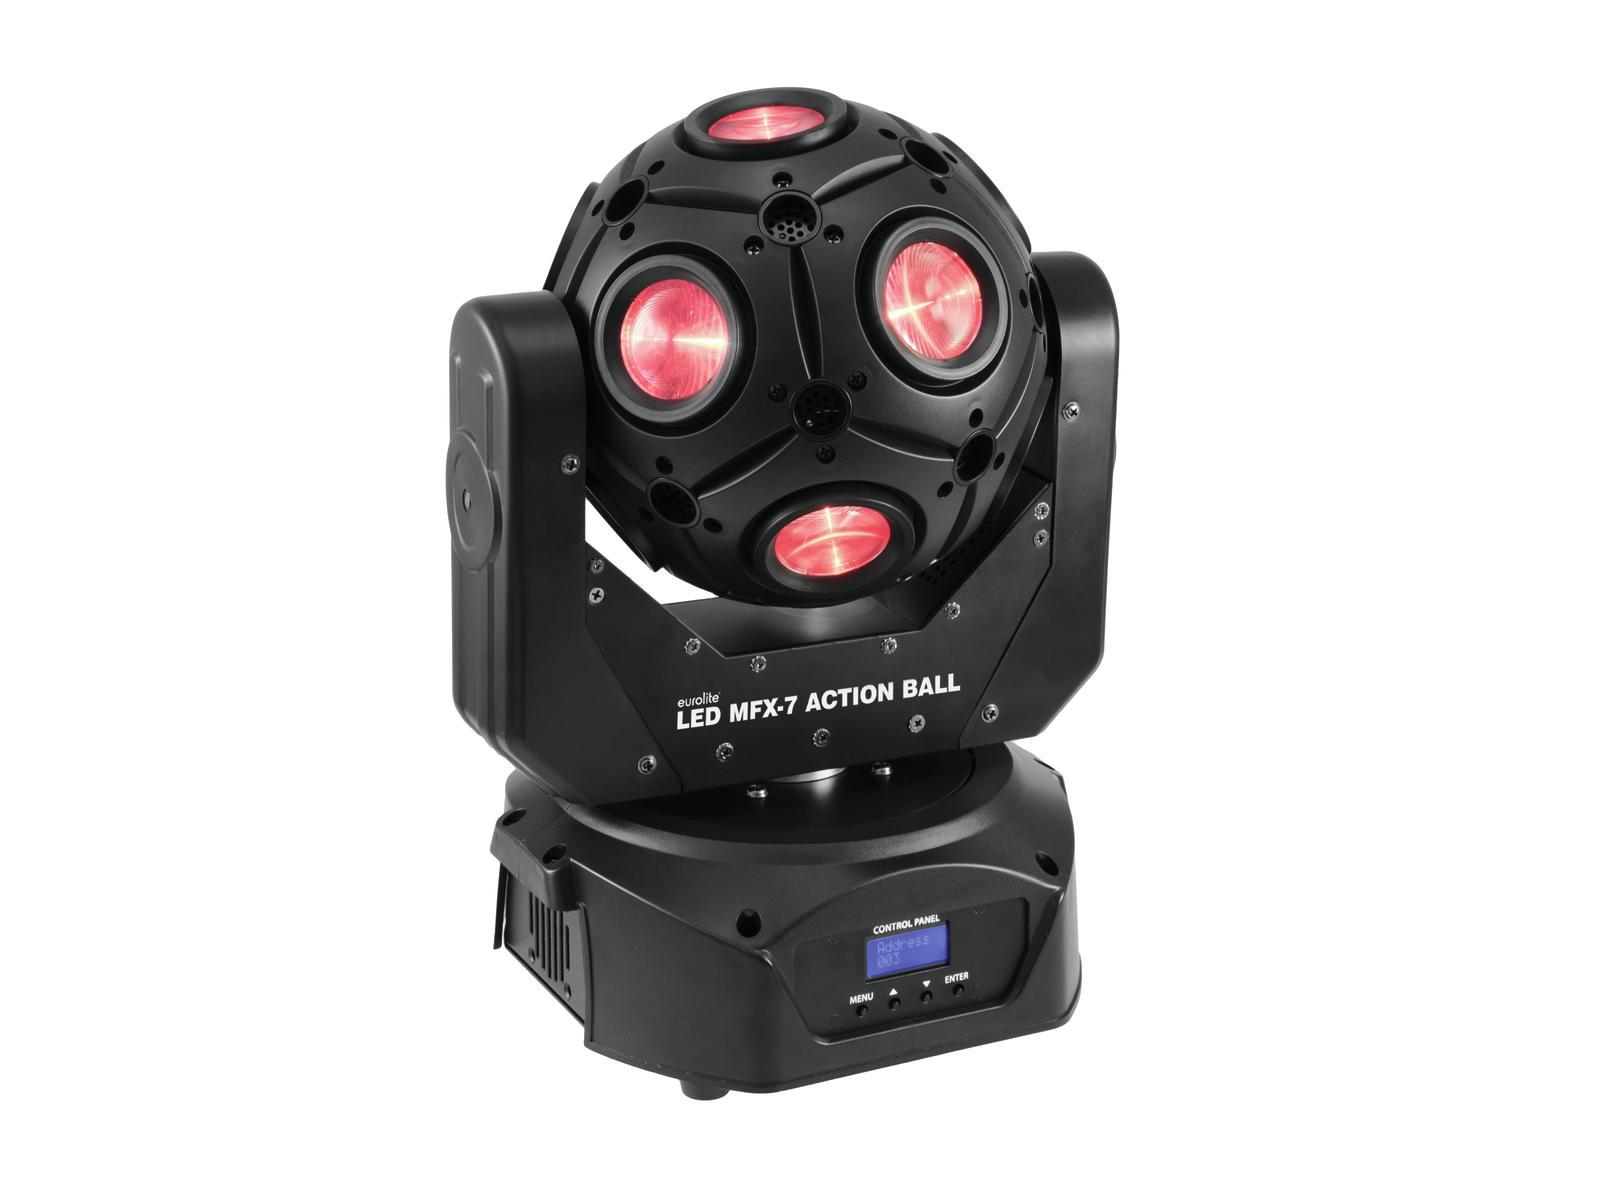 Action Platenspeler Eurolite Led Mfx 7 Action Ball 12 X 15w Rgbw